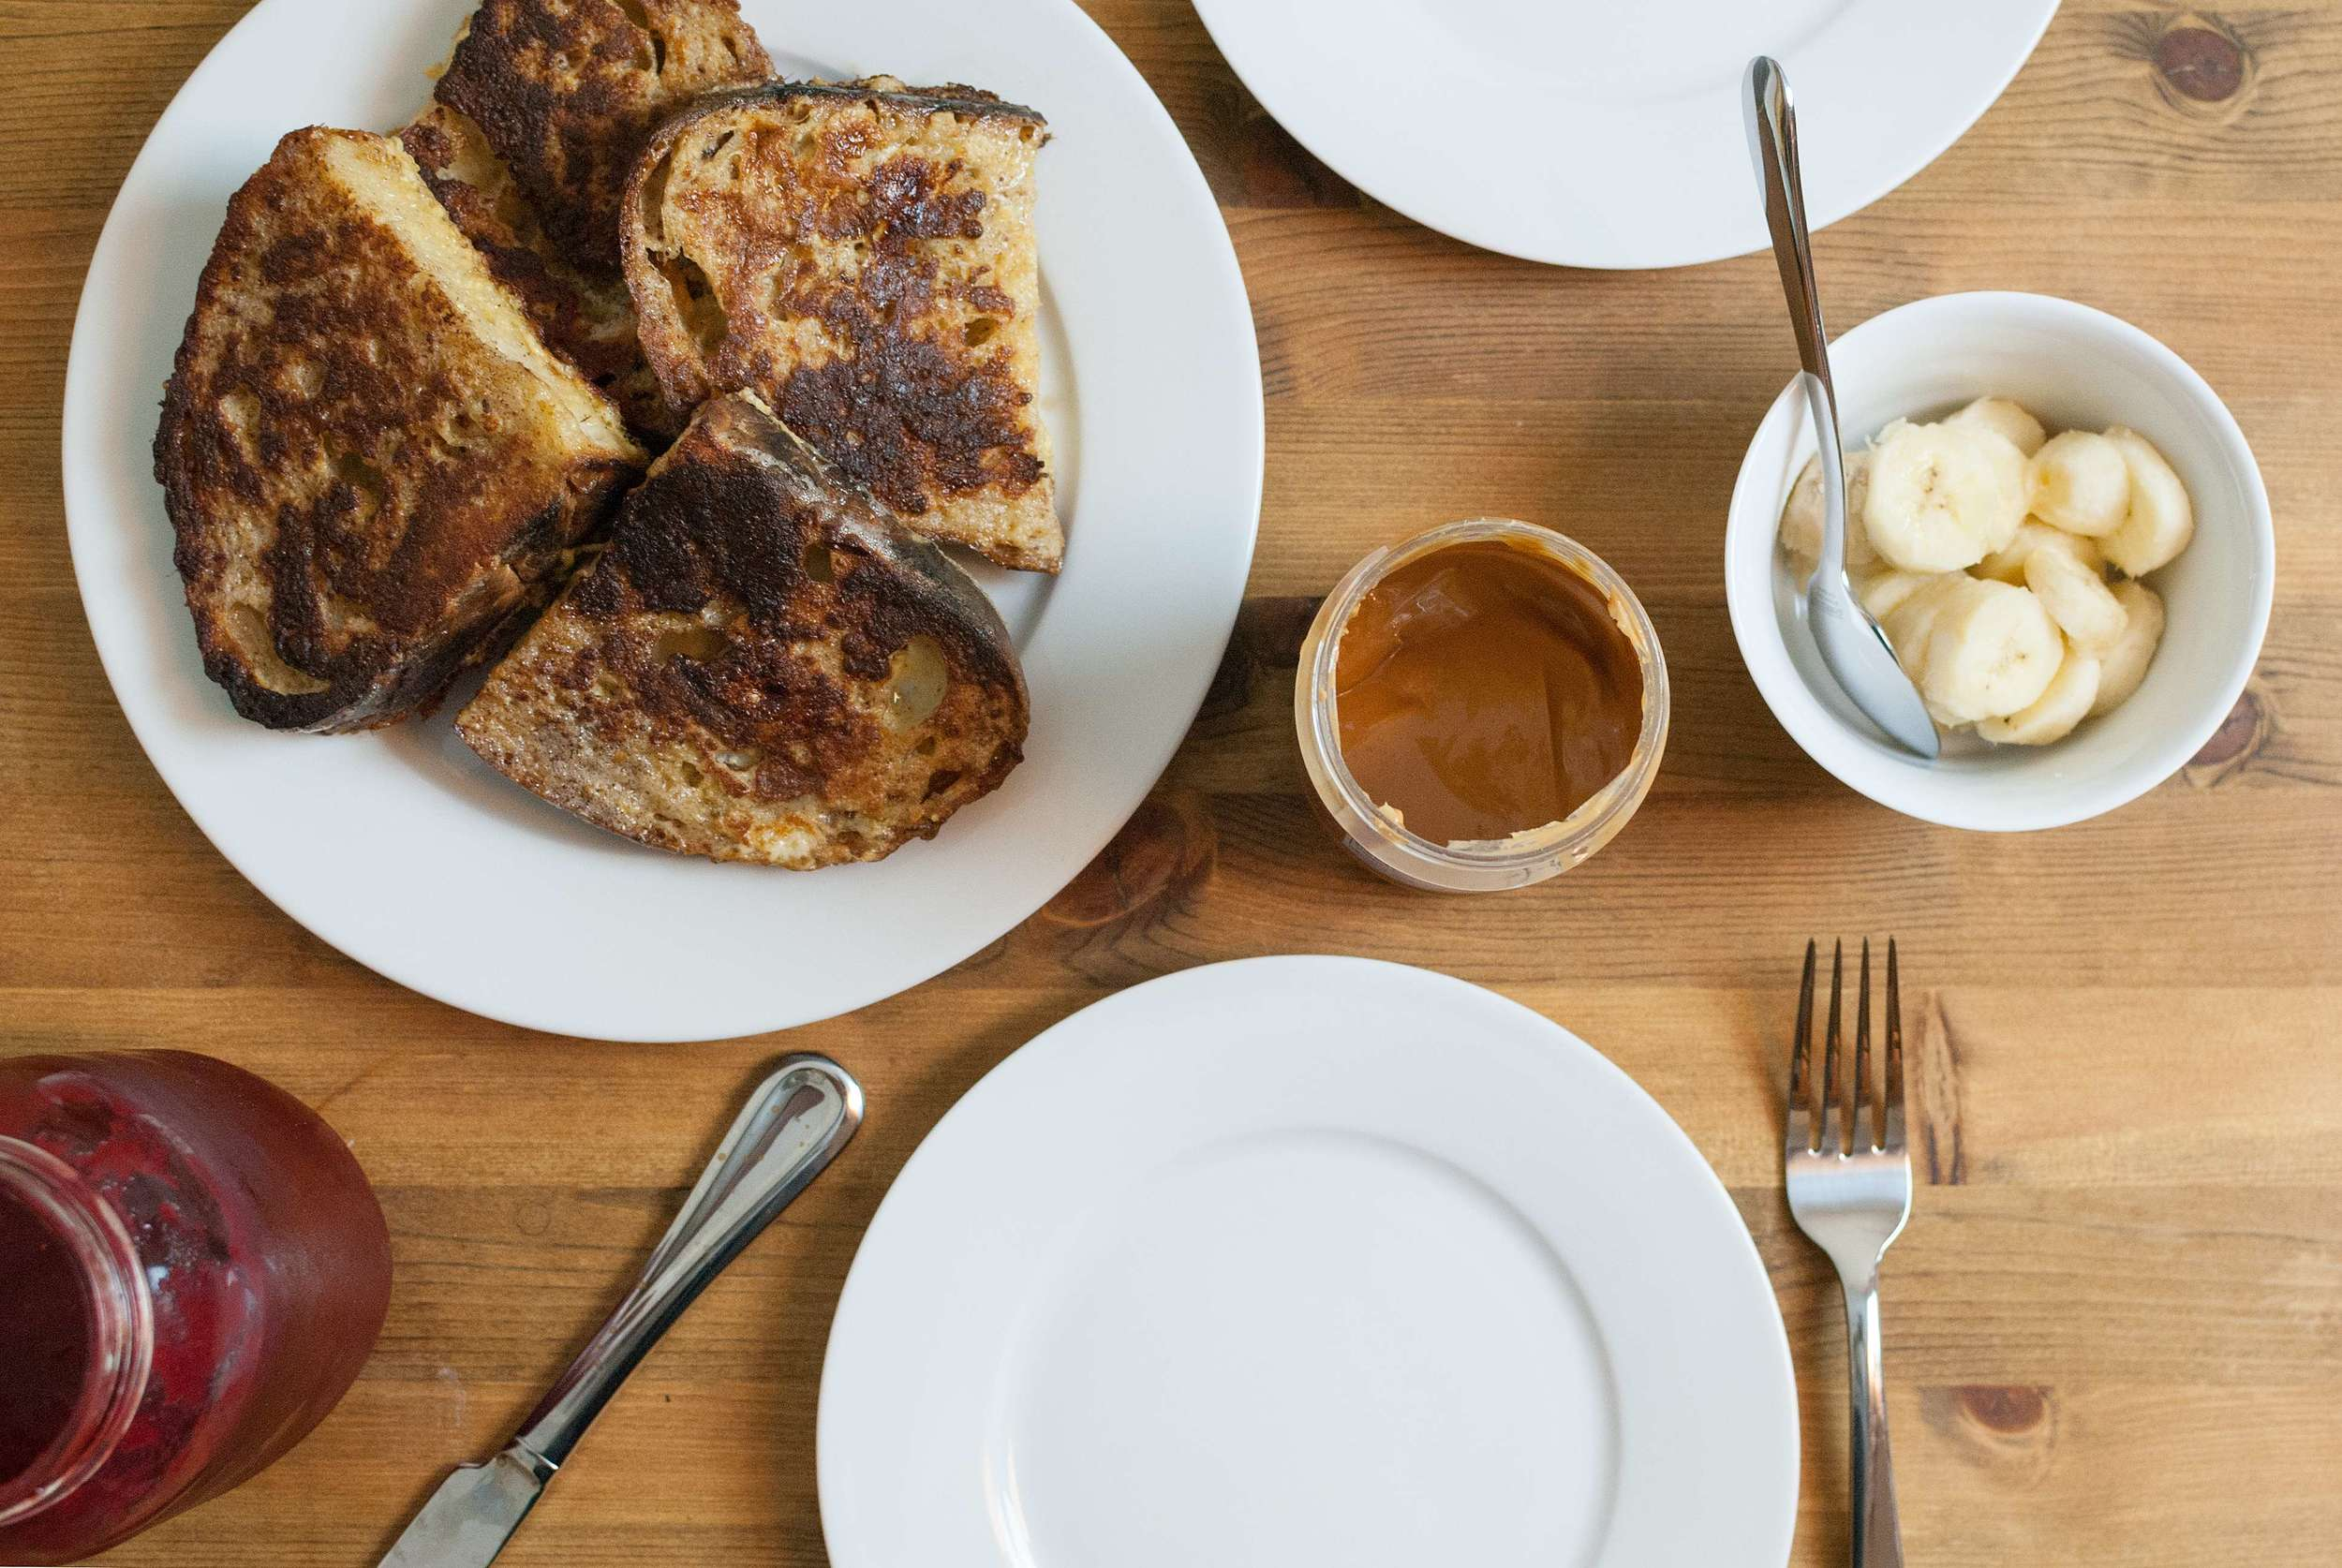 peanut-butter-and-jelly-french-toast-02